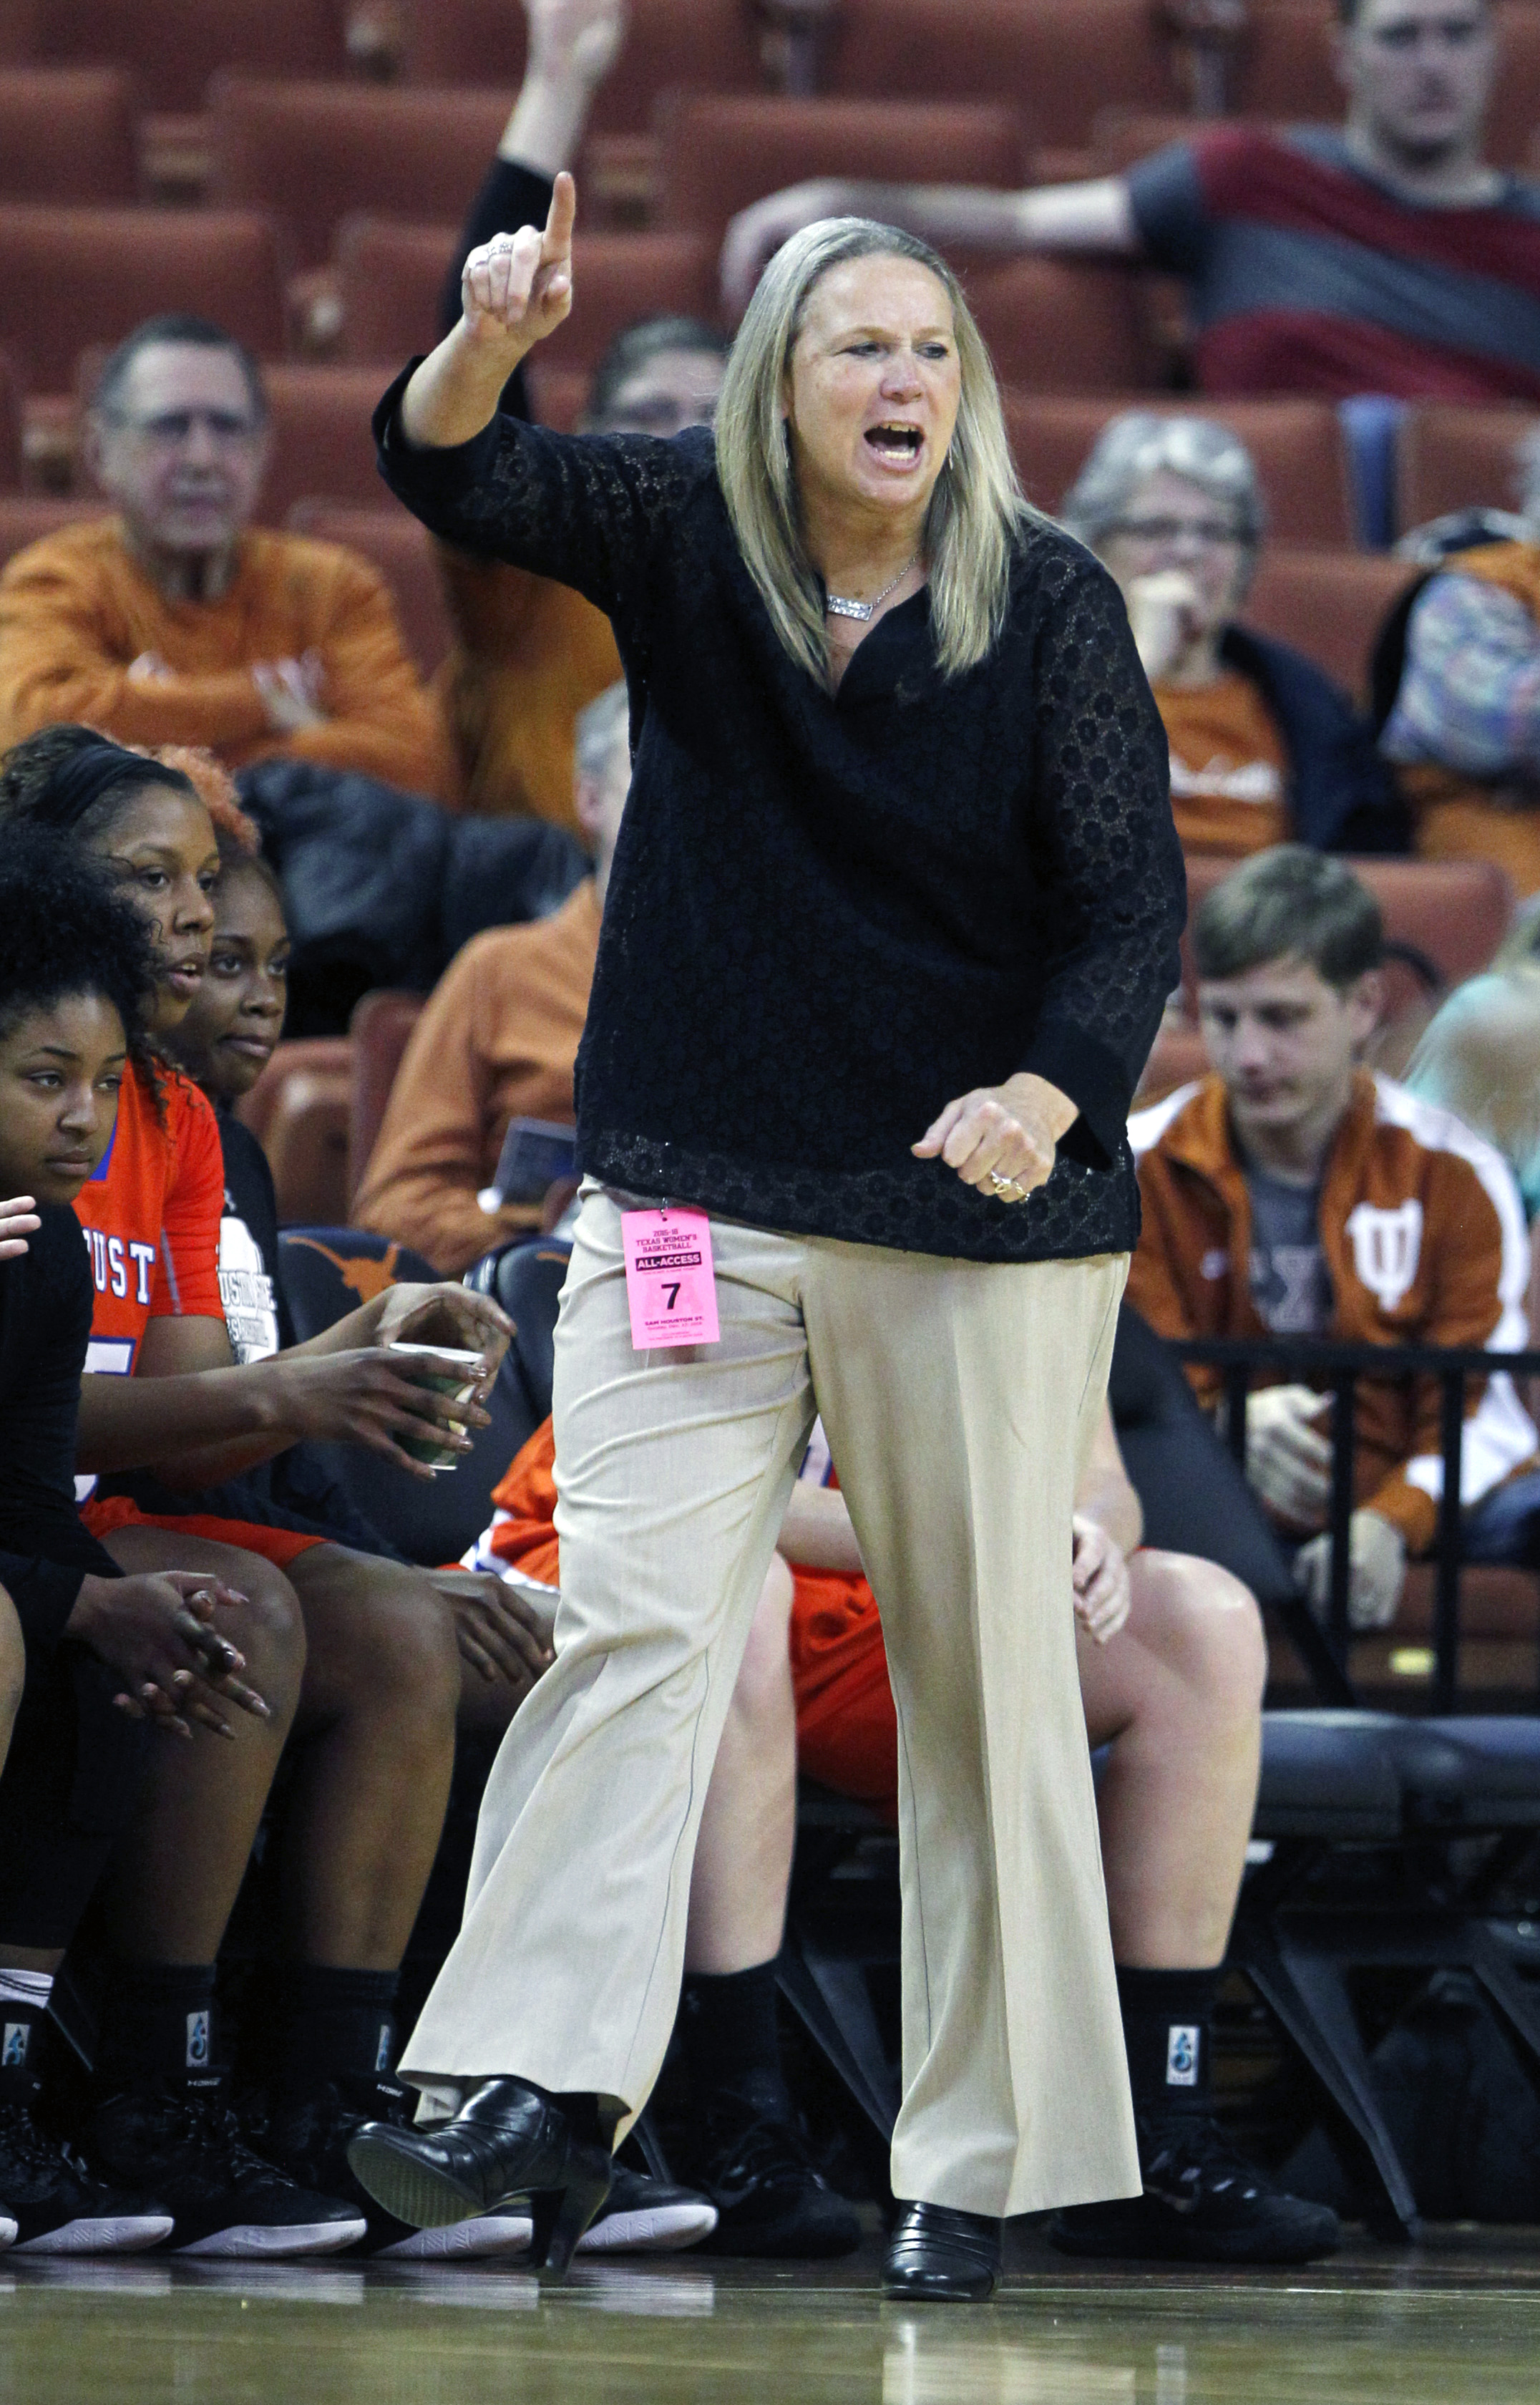 Sam Houston State coach Brenda Welch-Nichols calls to her team during the first half of an NCAA college basketball game against Texas, Sunday, Dec. 27, 2015, in Austin, Texas. (AP Photo/Michael Thomas)